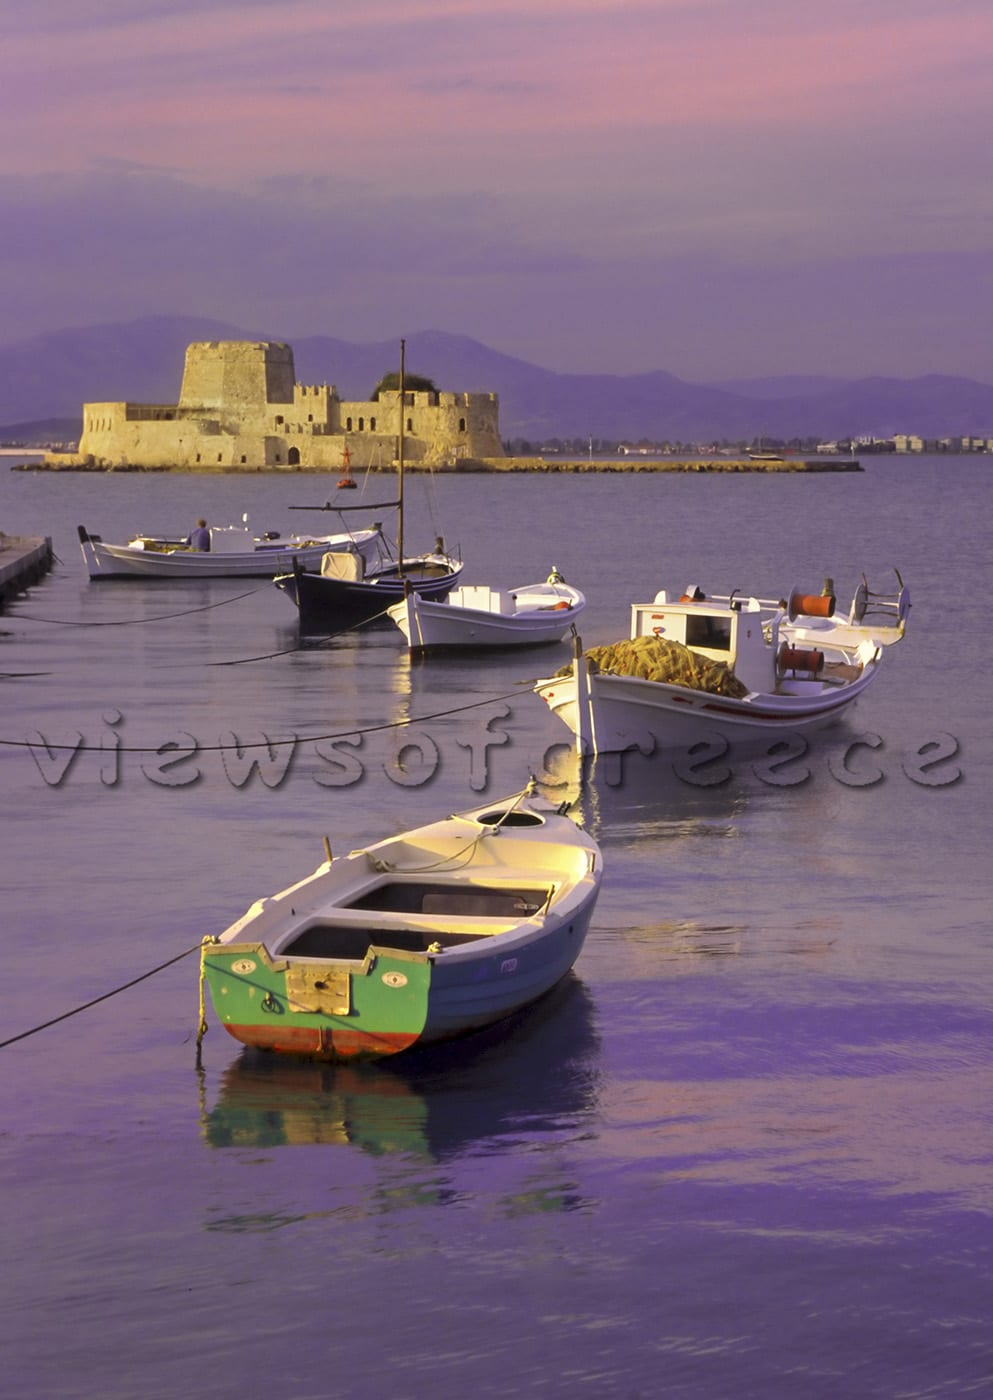 Greece, nafplio, mediterranean, peloponnese, greek, architecture, city, nafplion, castle, argolida, medieval, traditional, historic, touristic, peloponnisos, Ναύπλιο, Παλαμίδι, Μπούρτζι,